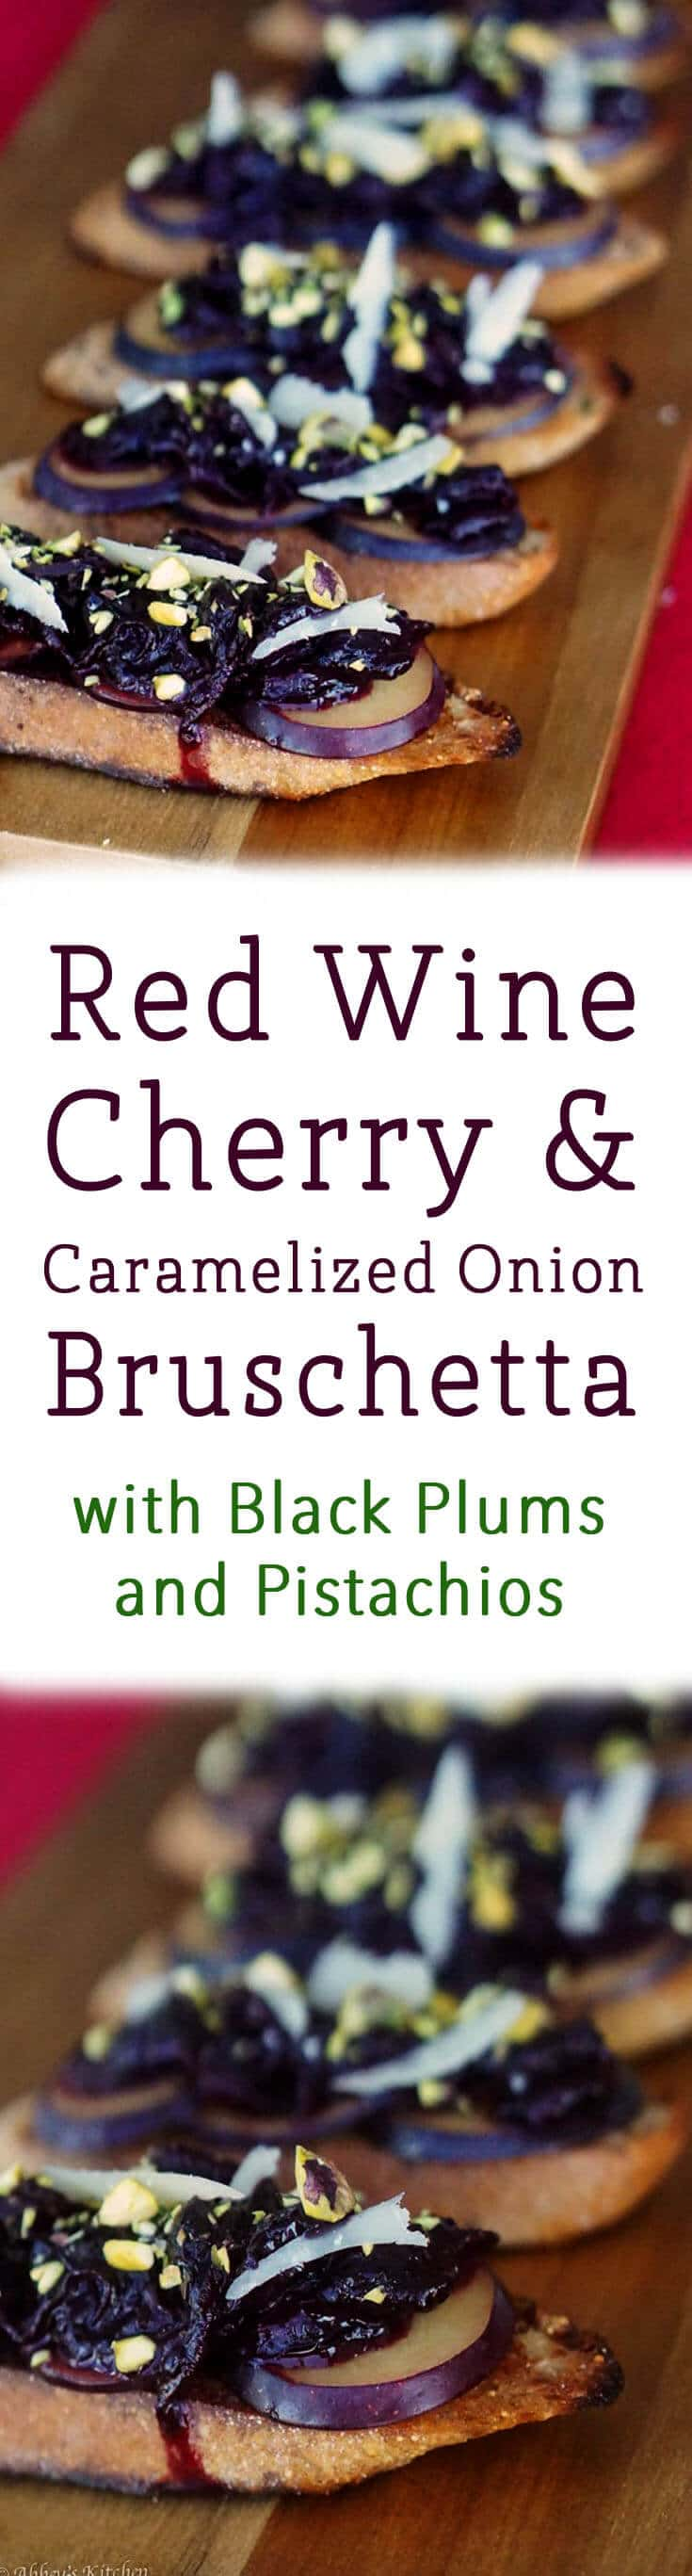 This Healthy Red Wine Cherry and Caramelized Bruschetta recipe is a delicious cocktail party snack!